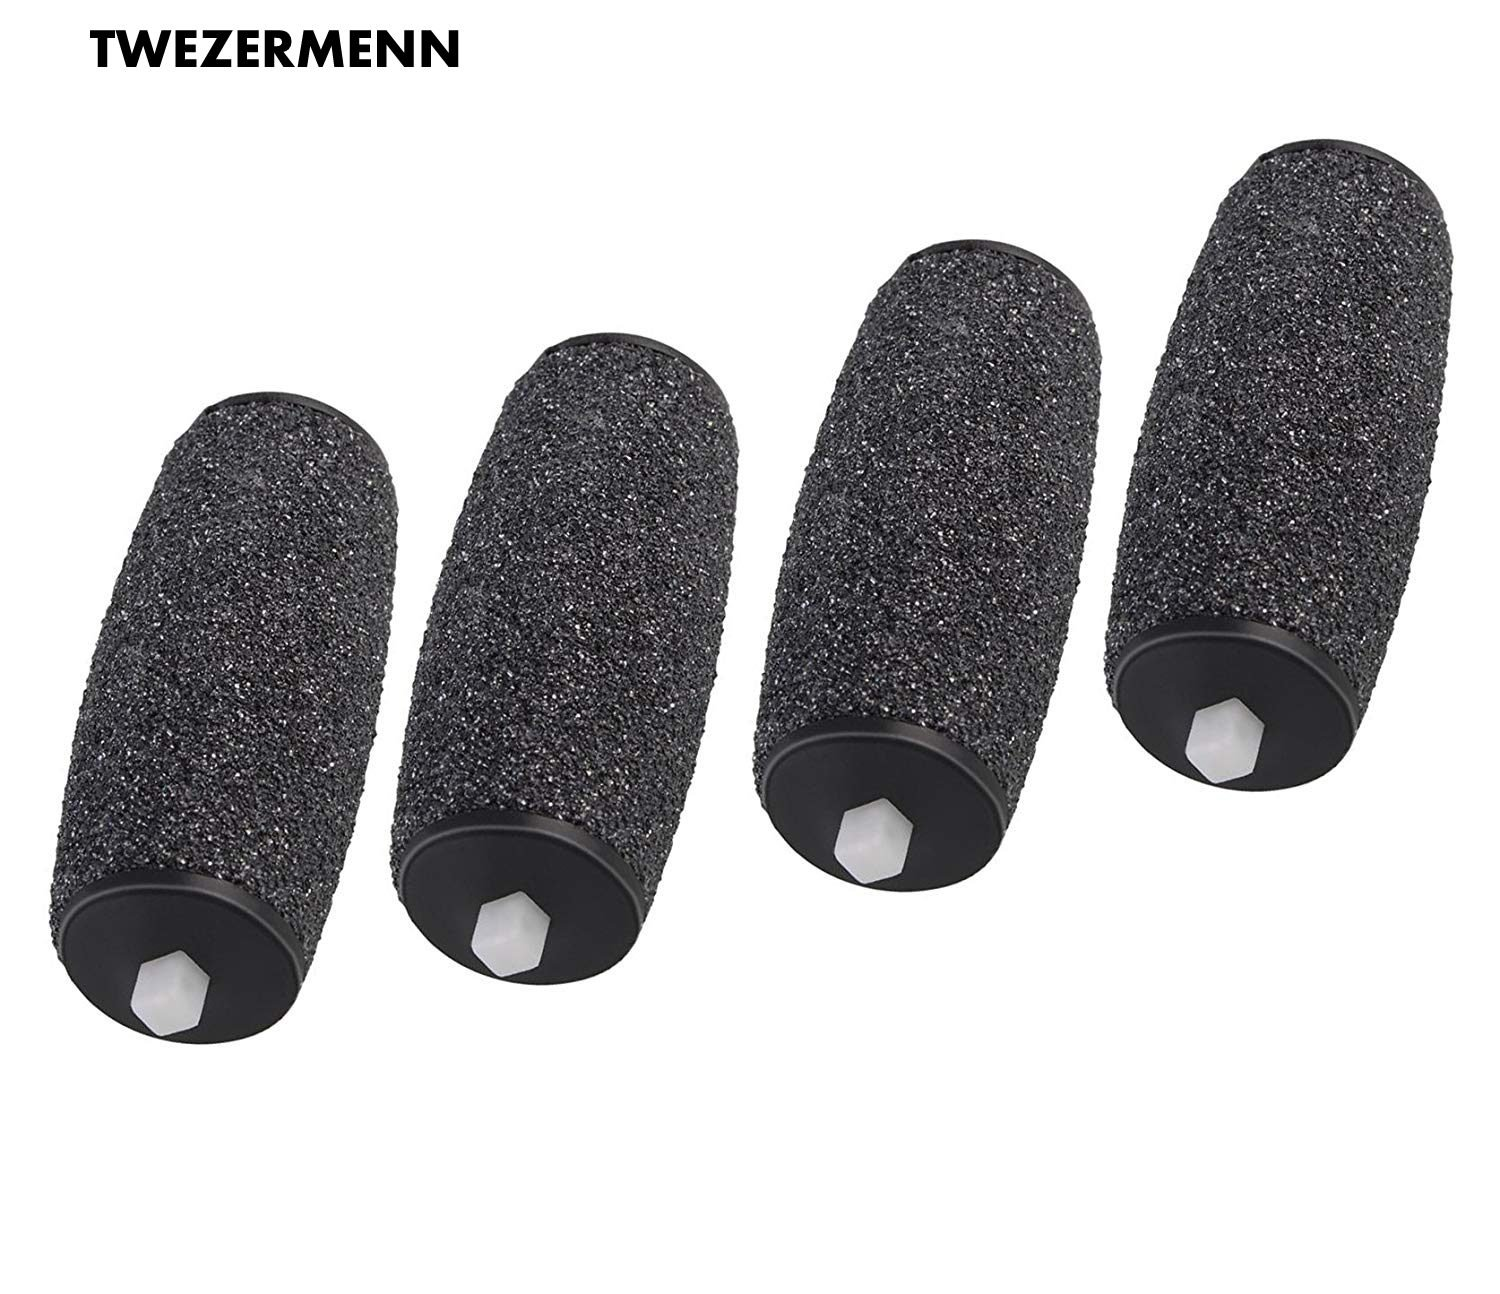 4 x Pedi Hard Skin Remover Coarse Replacement Rollers Compatible with Rollers Pedi Electric Hard Skin Remover Refills TWEZER